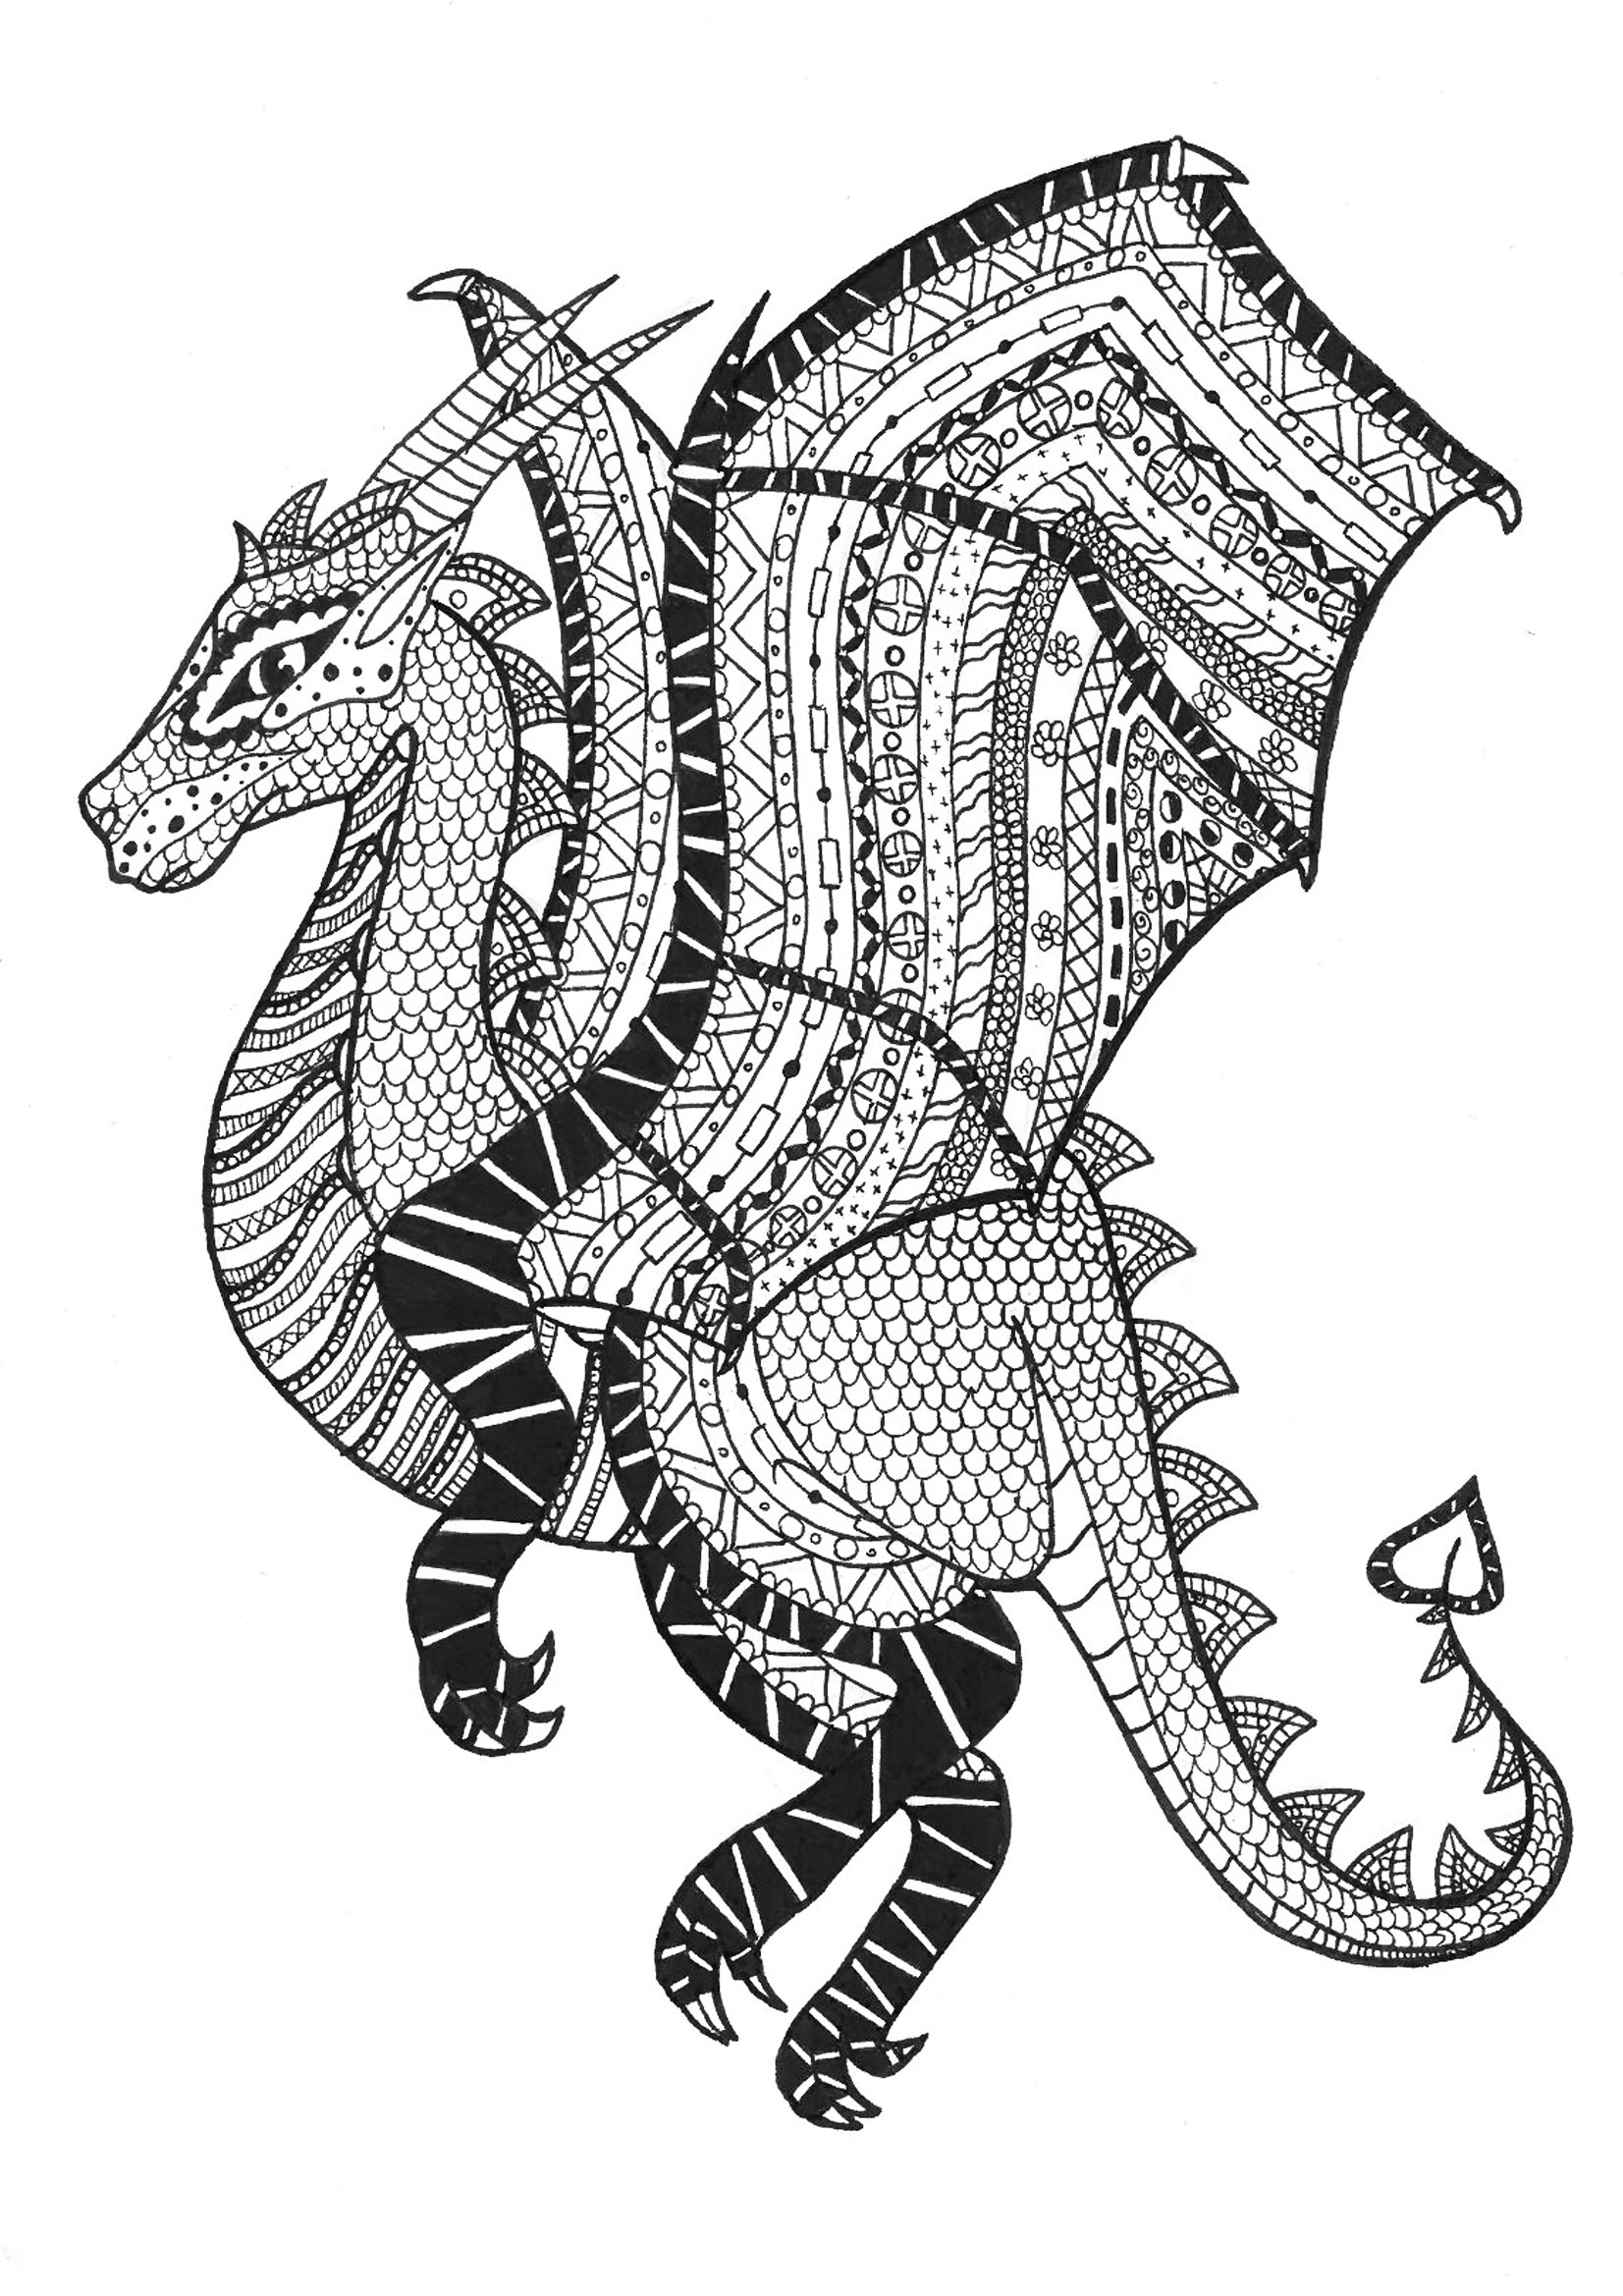 Coloring pages for adults zentangle - Coloring Page Adults Dragon Zentangle Rachel